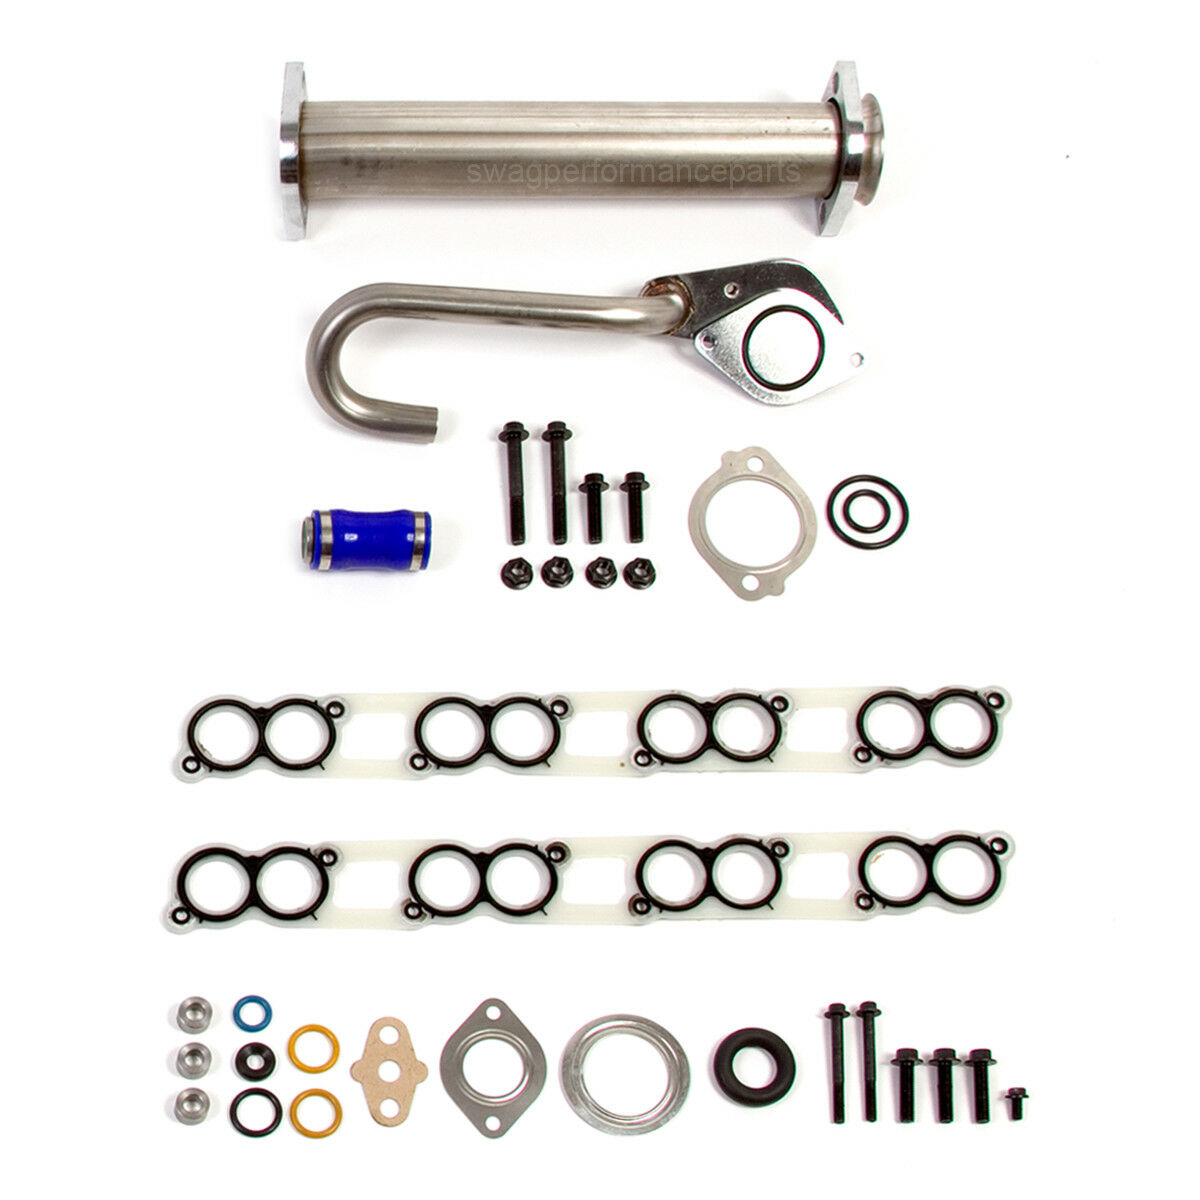 Swag Performance Parts Replacement EGR Oil Cooler To Intake Replacement Hose